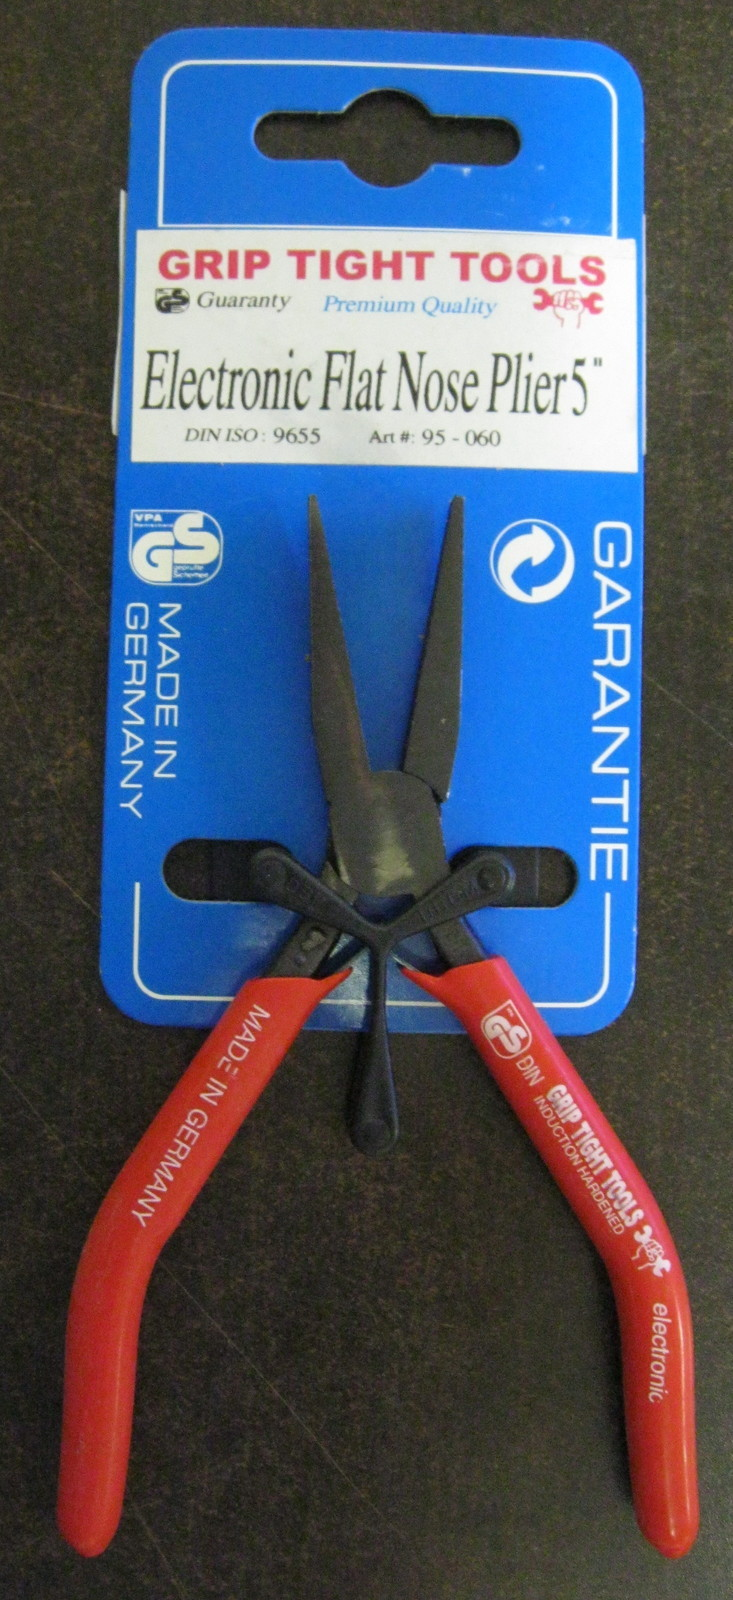 """New Grip Tight Tools 5"""" Electronic Flat Nose Mini Plier #95-060"""